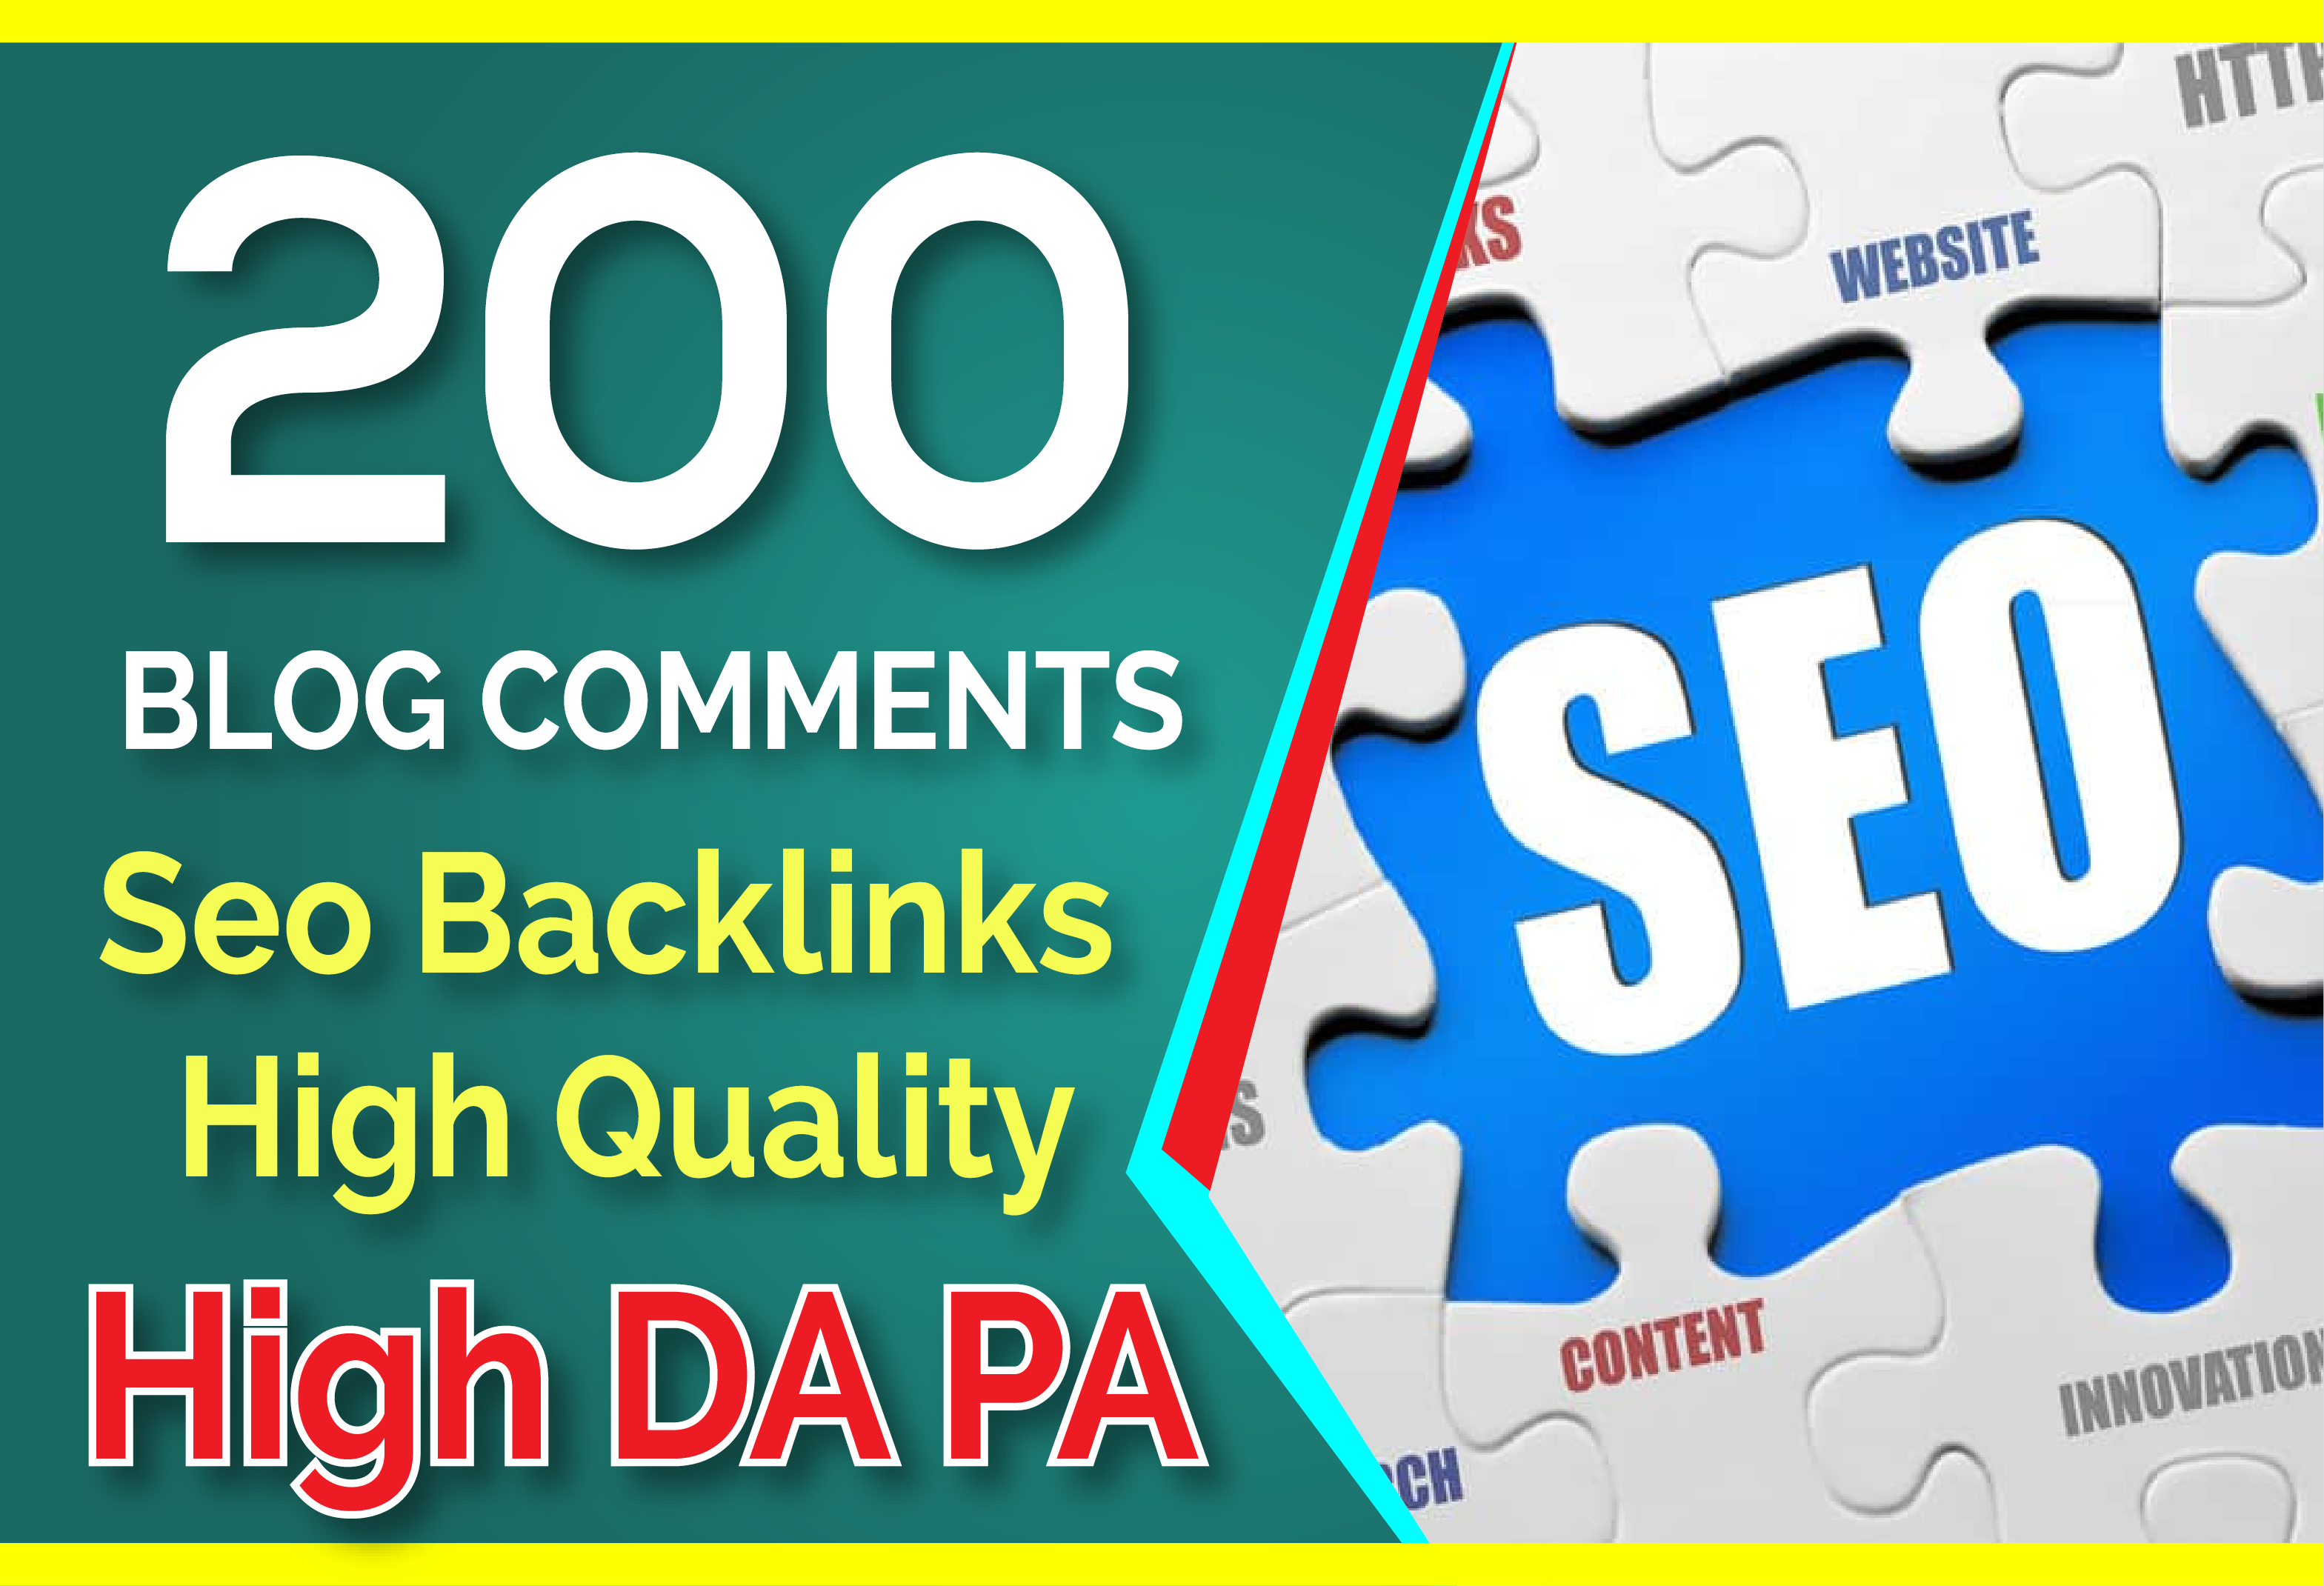 200 blog comments backlinks on high da pa